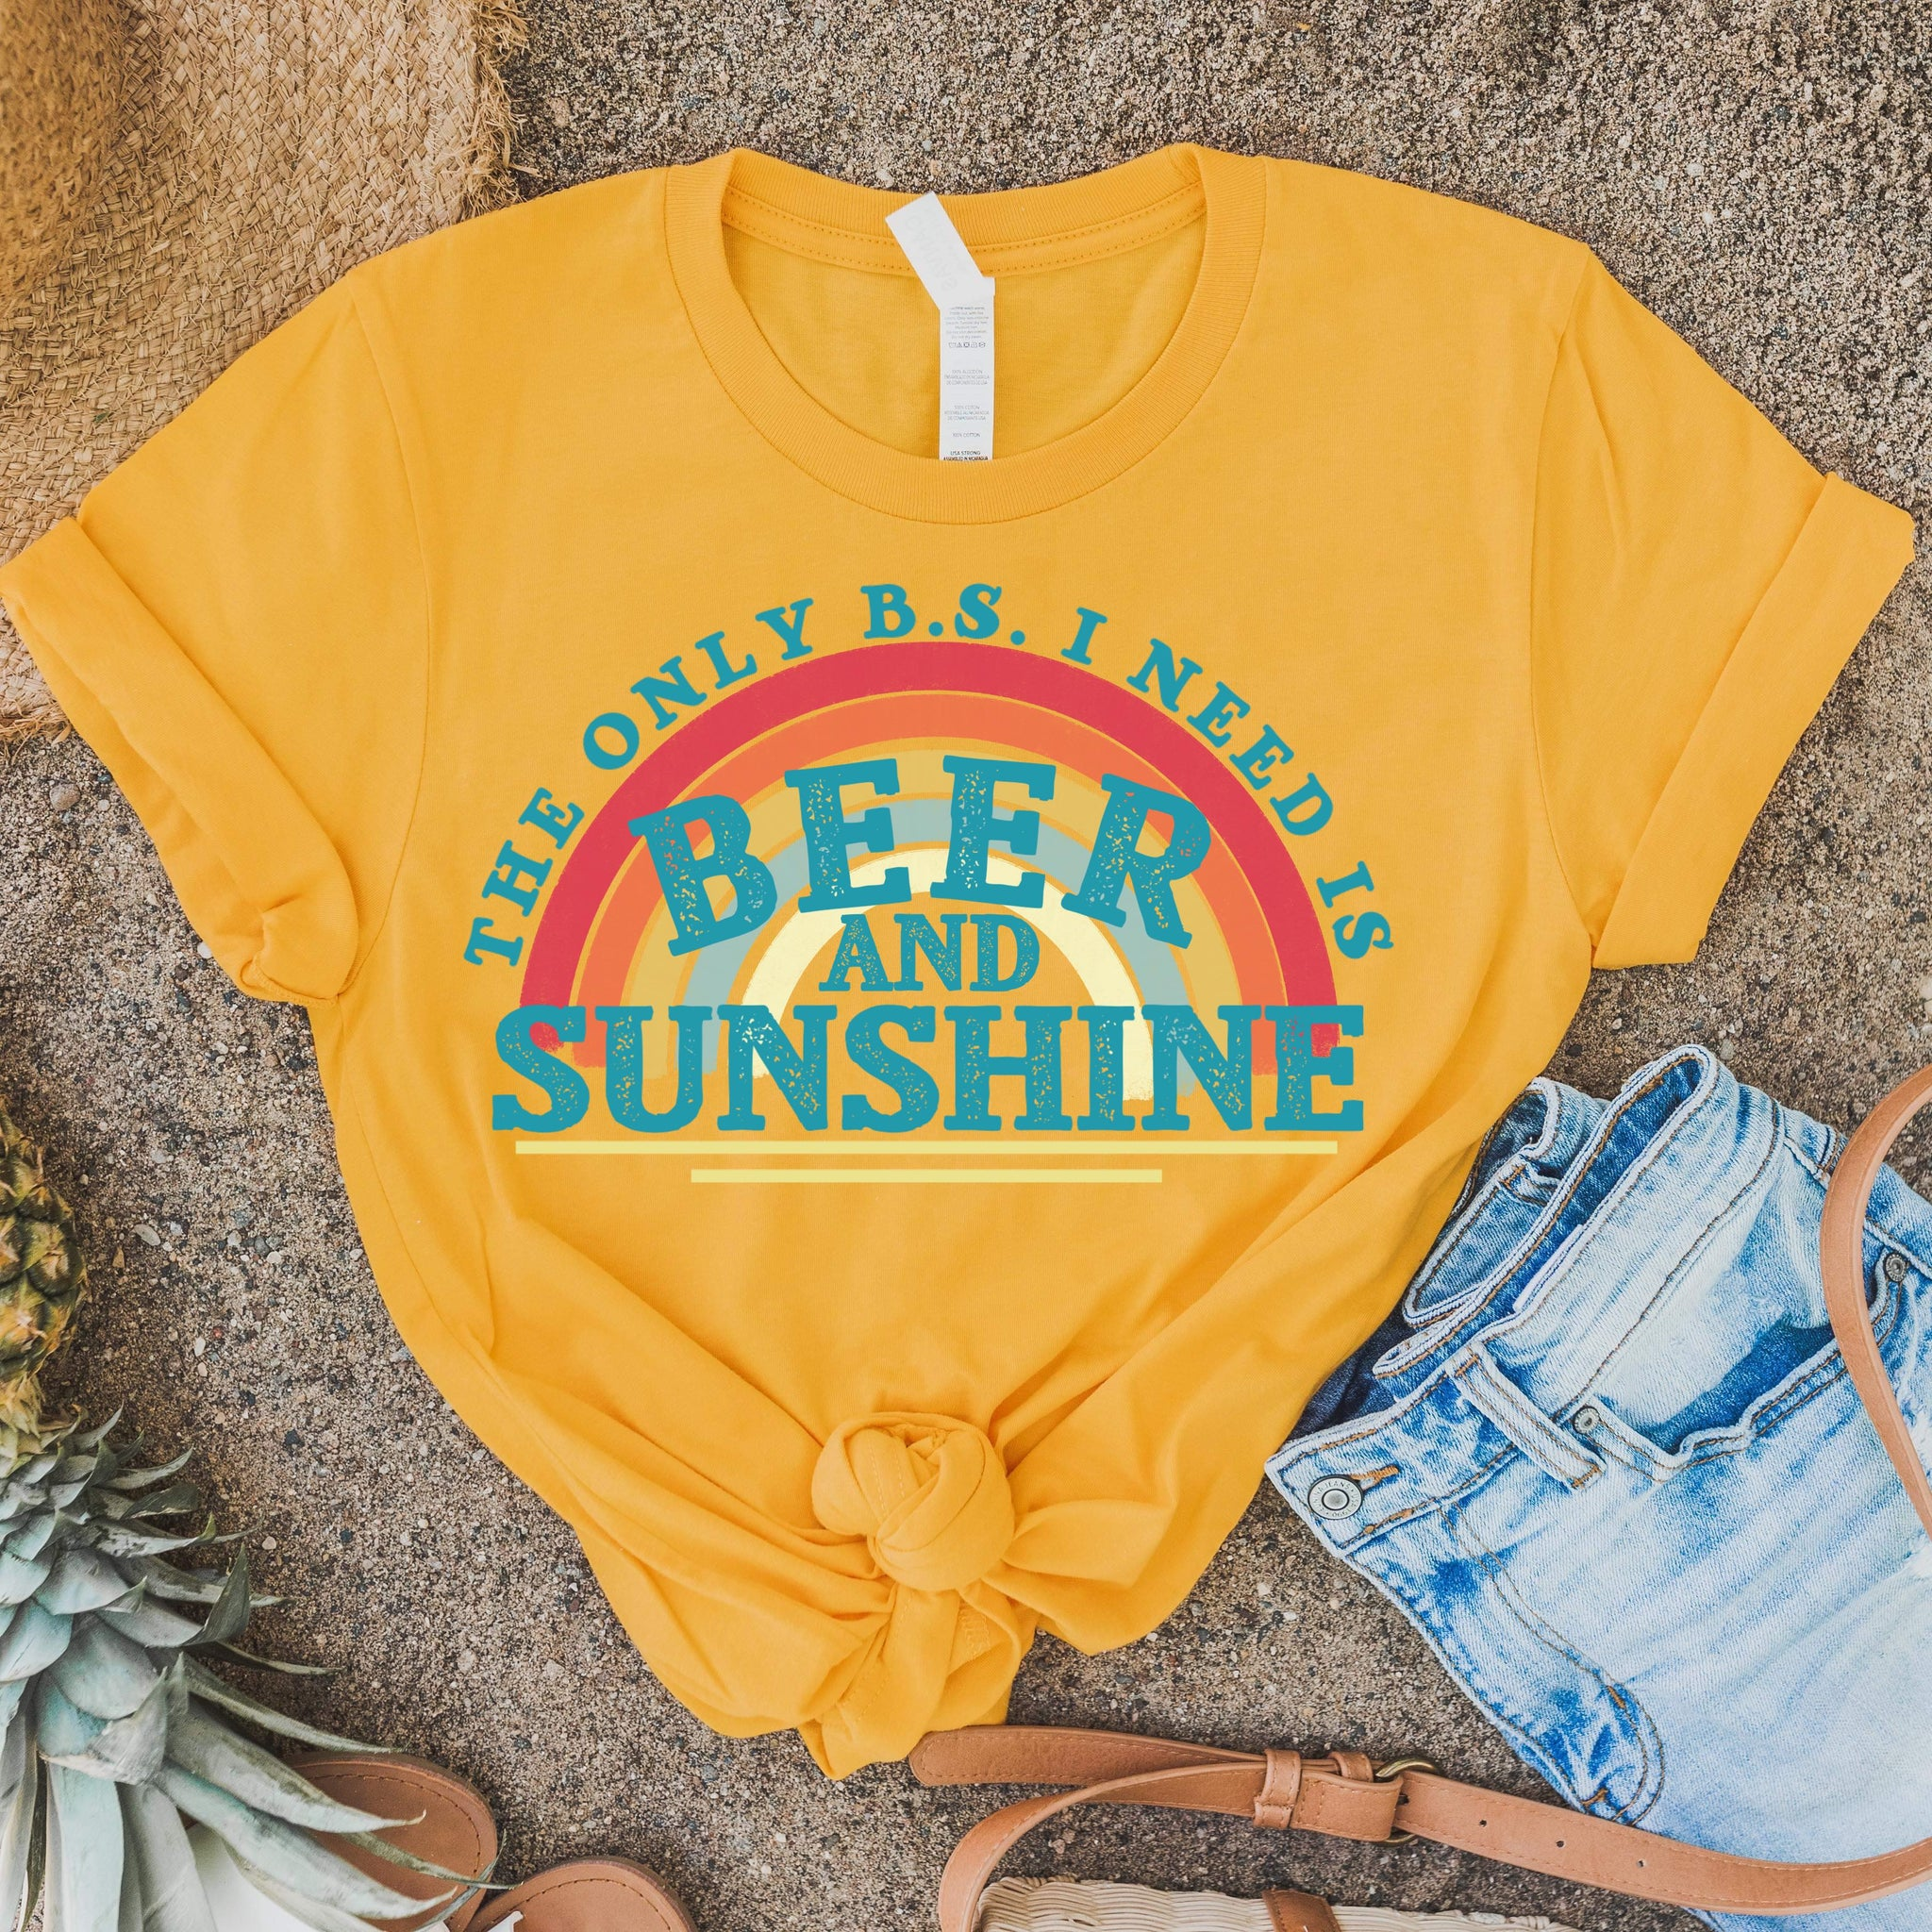 Beer and Sunshine {Soft / High Heat}